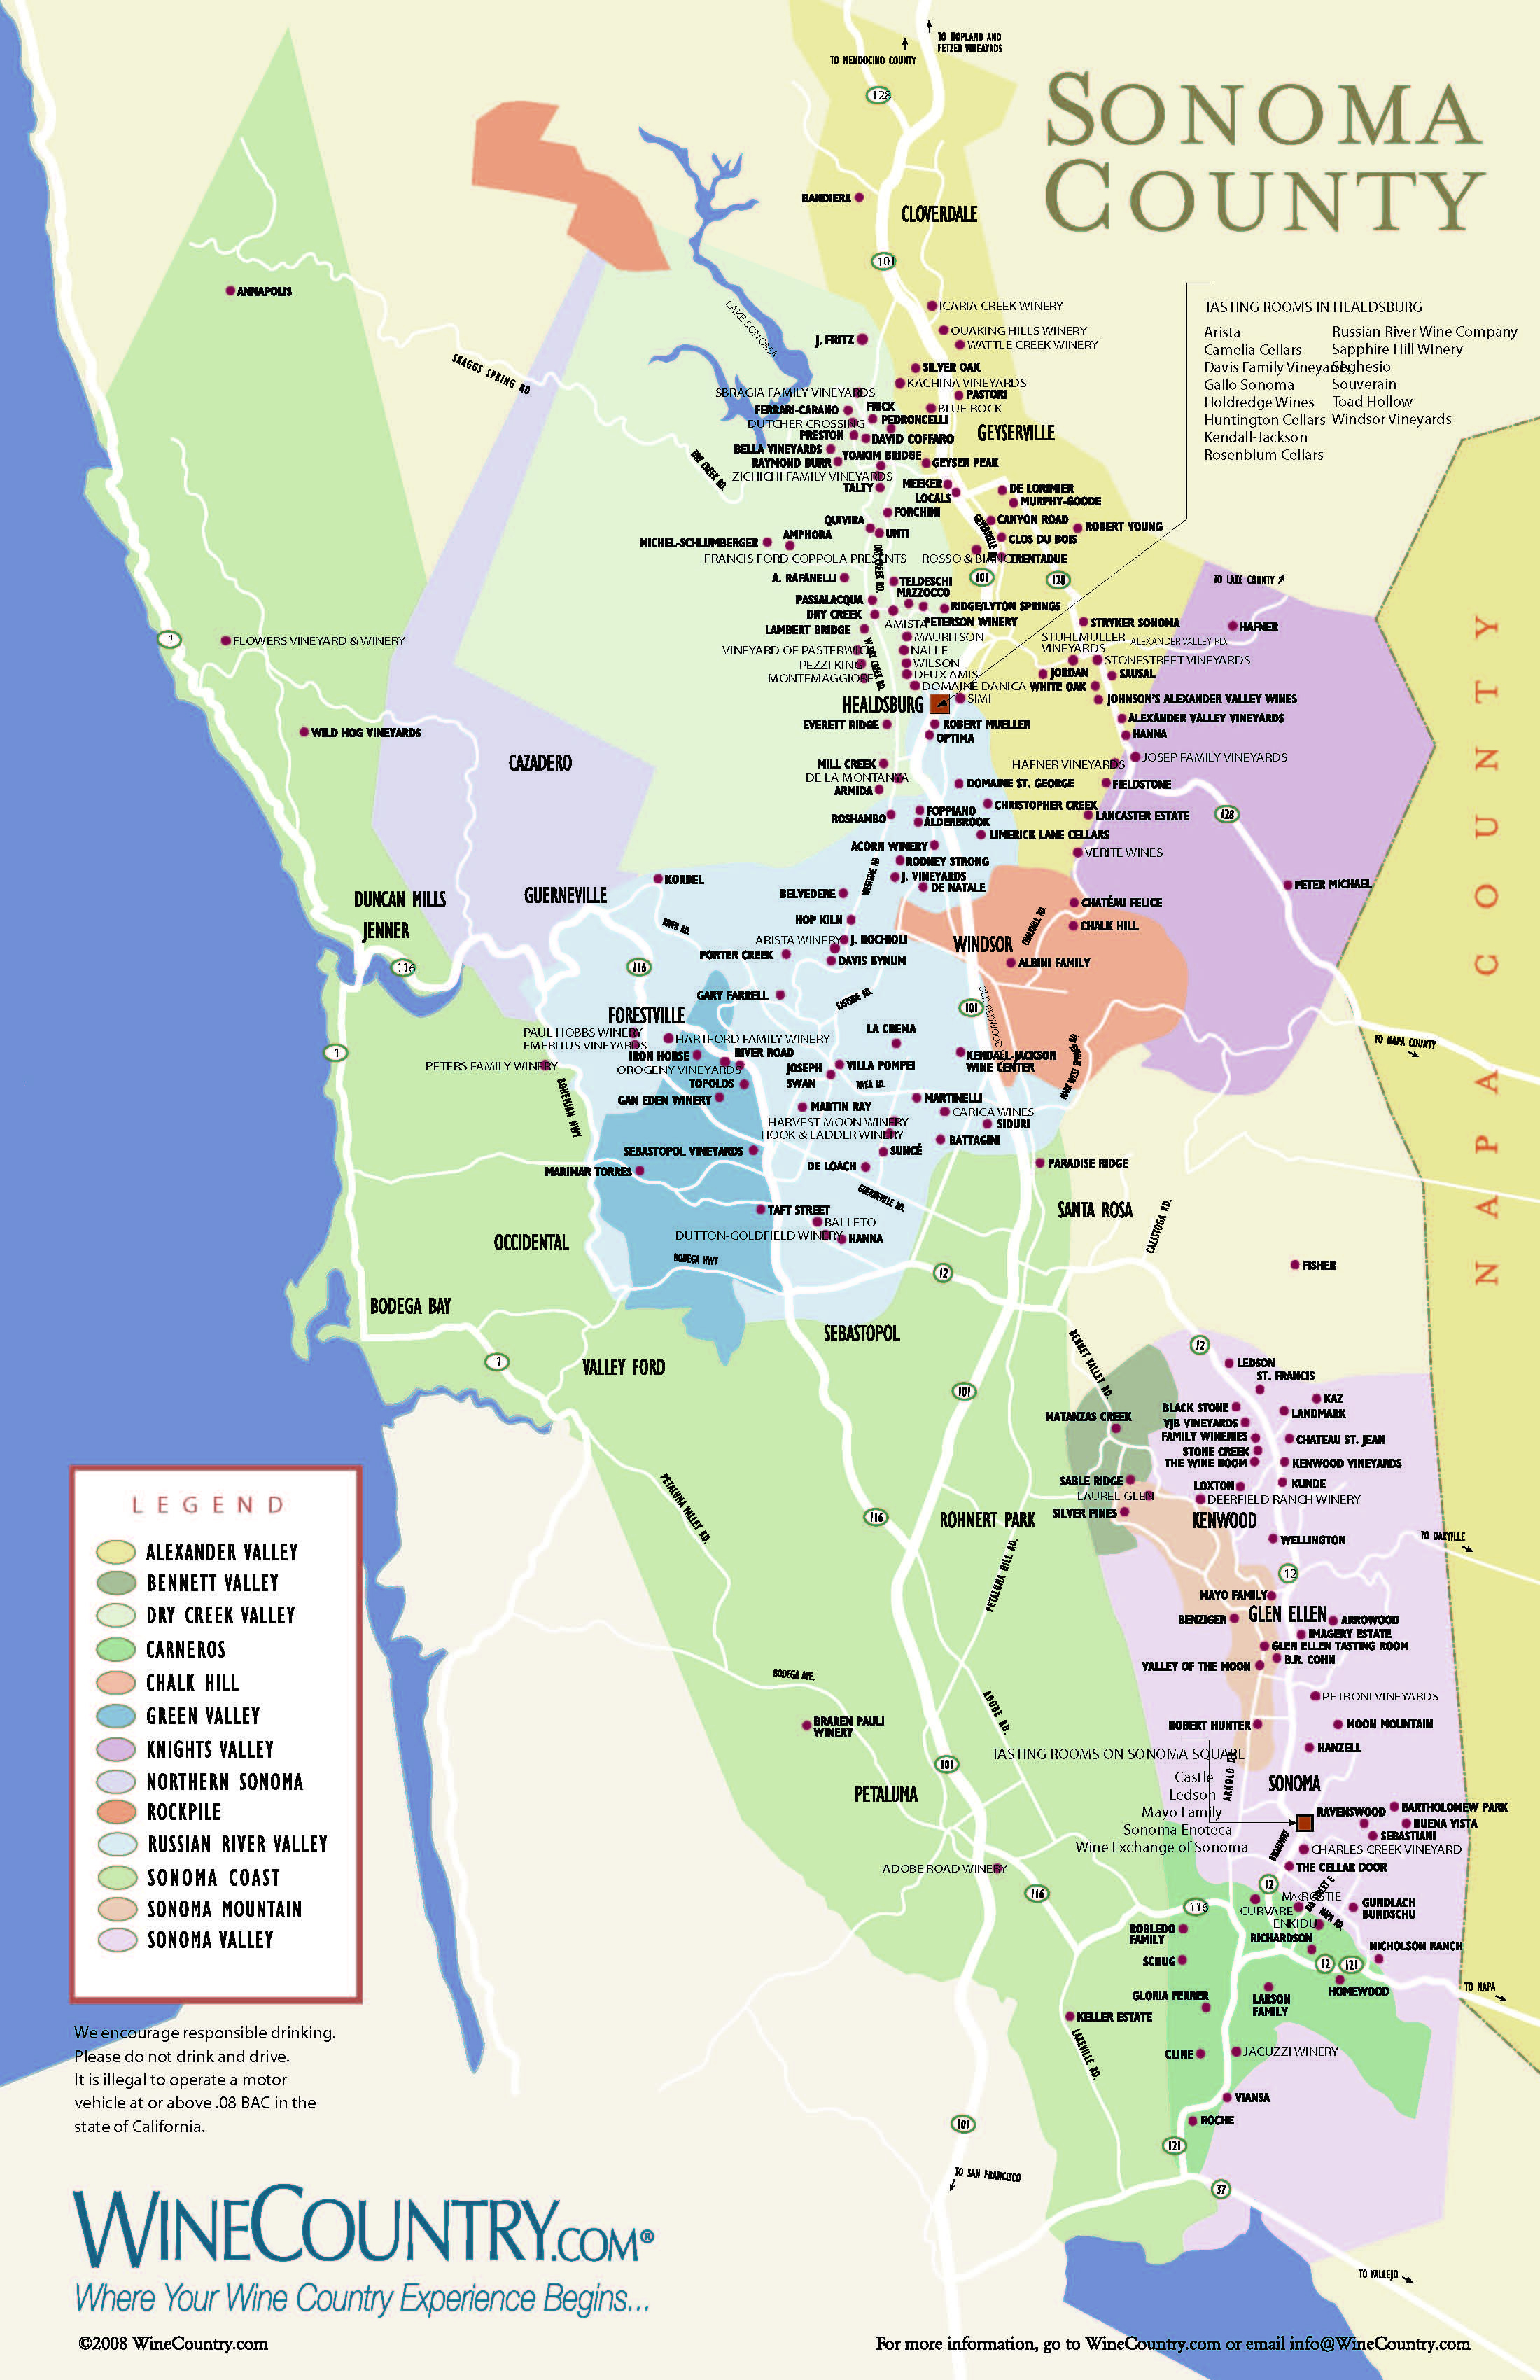 My Home <3 Favorite Place! Farm Fresh Food, Fantastic Wine And - Sonoma Valley California Map